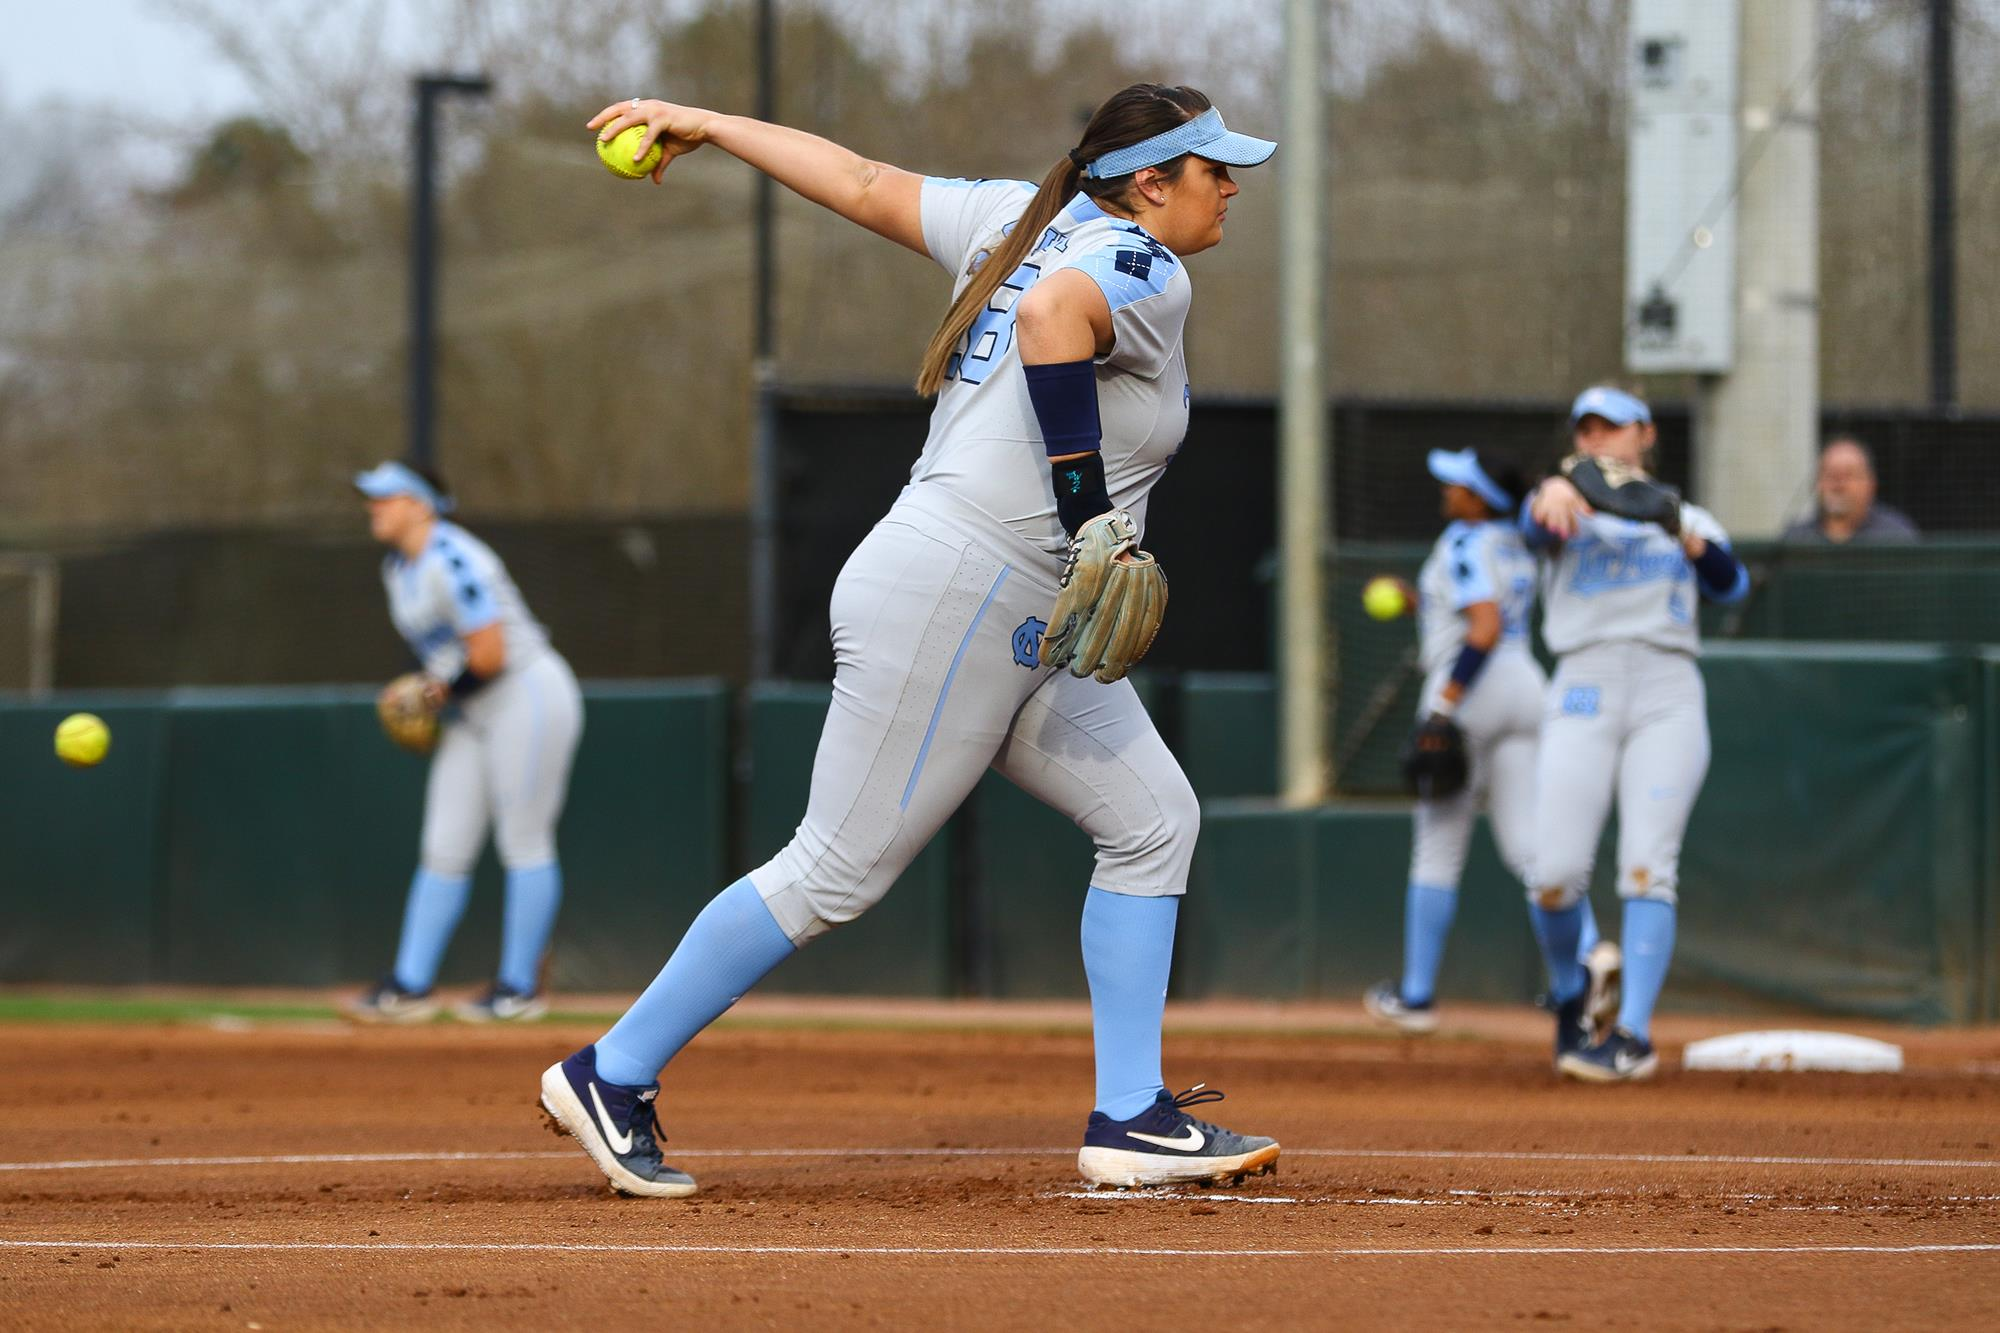 Brittany Pickett - Softball - University of North Carolina